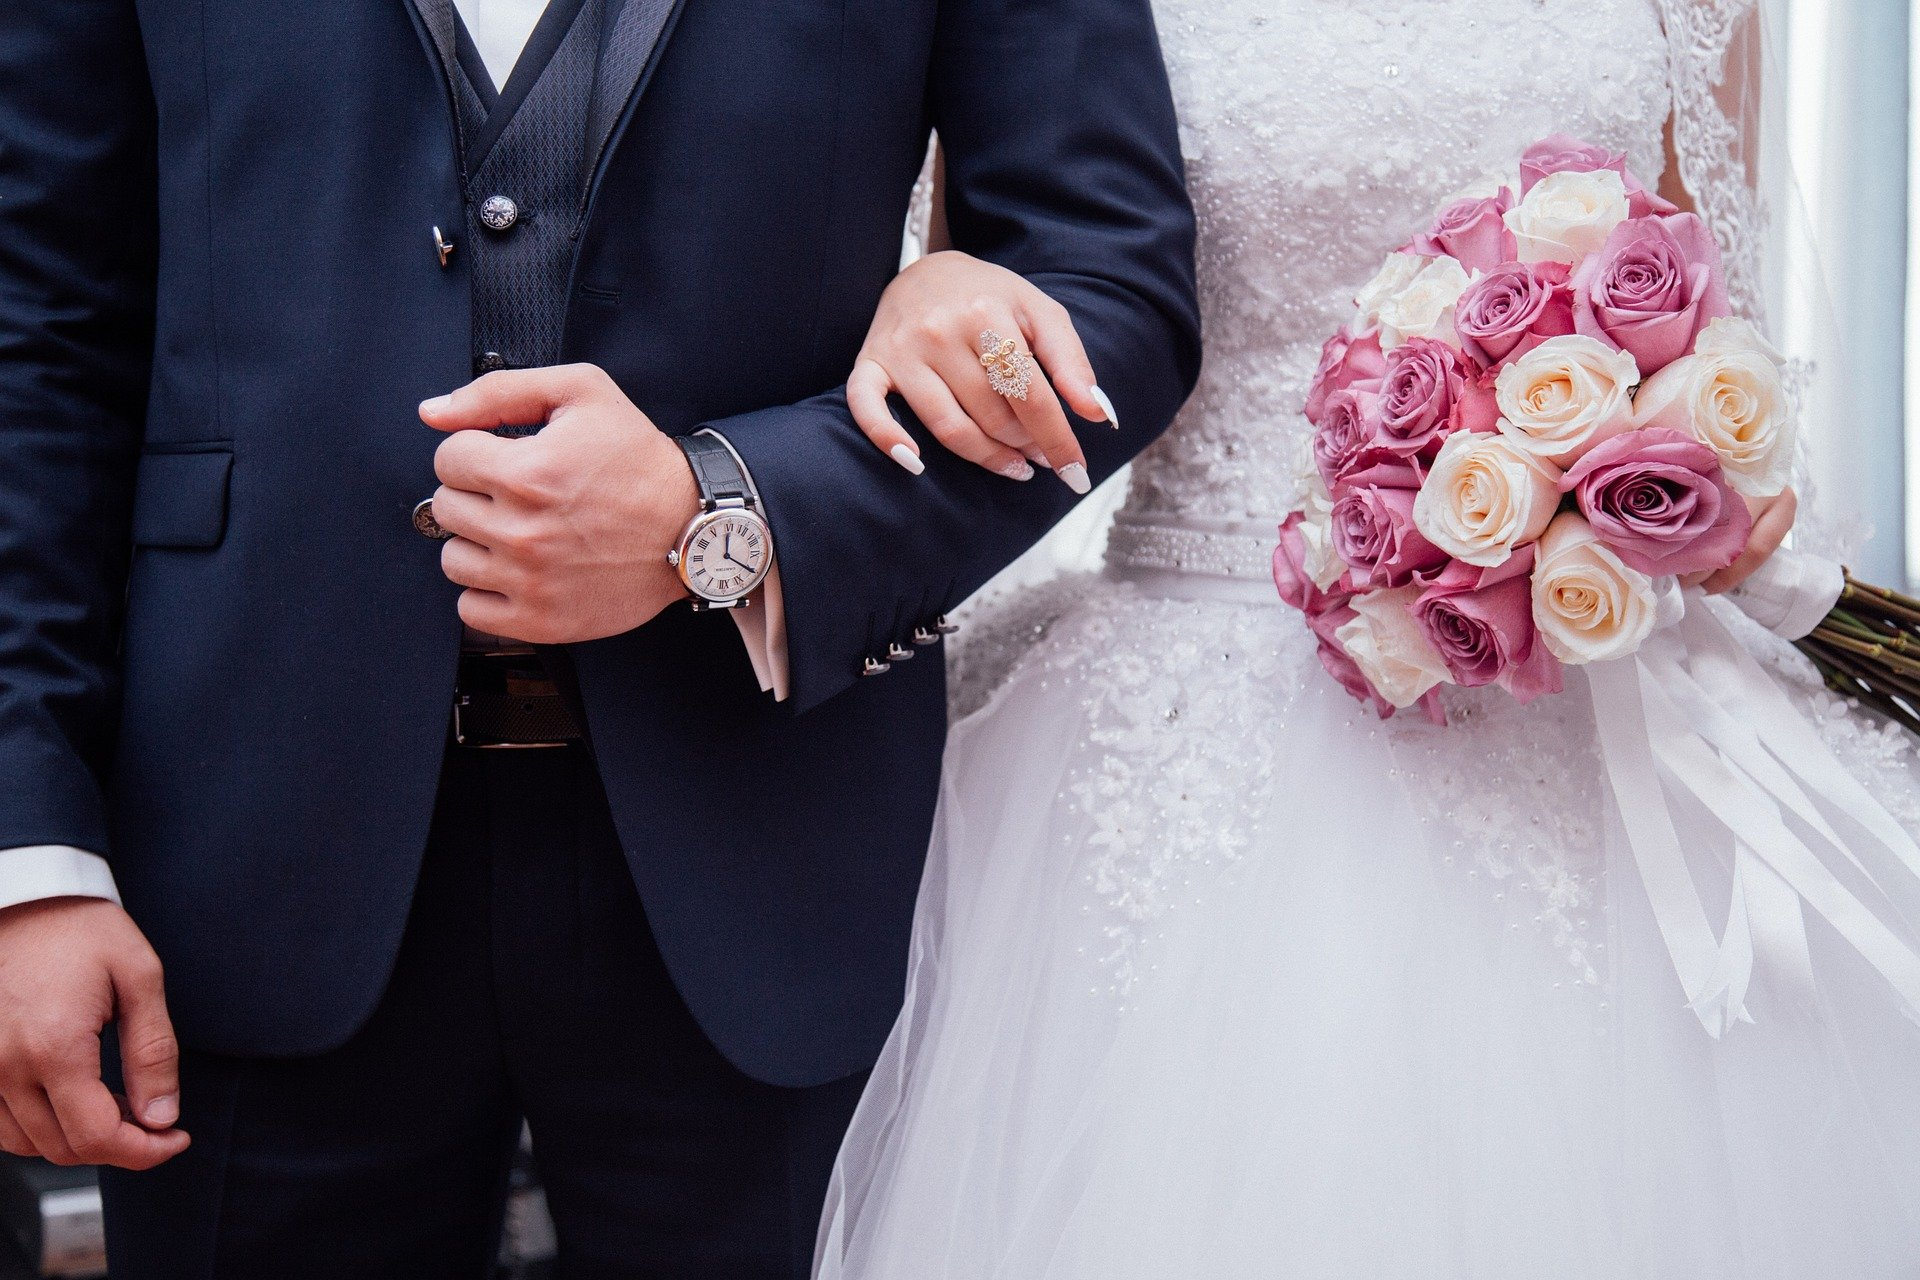 So the couple got married!   Photo: Pixabay/StockSnap